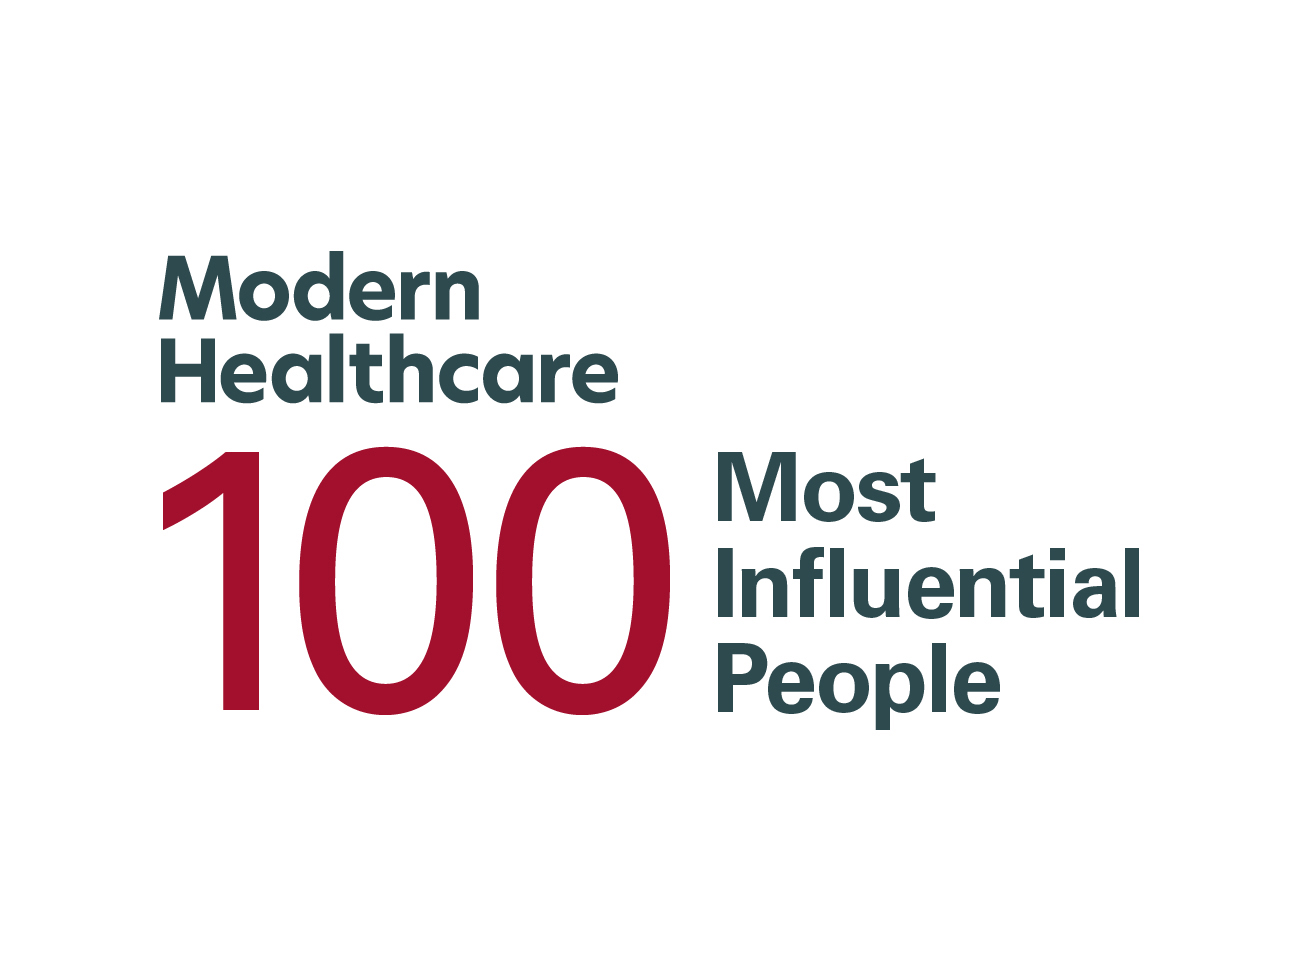 Modern Healthcare 100 Most Influential People 2019 logo.